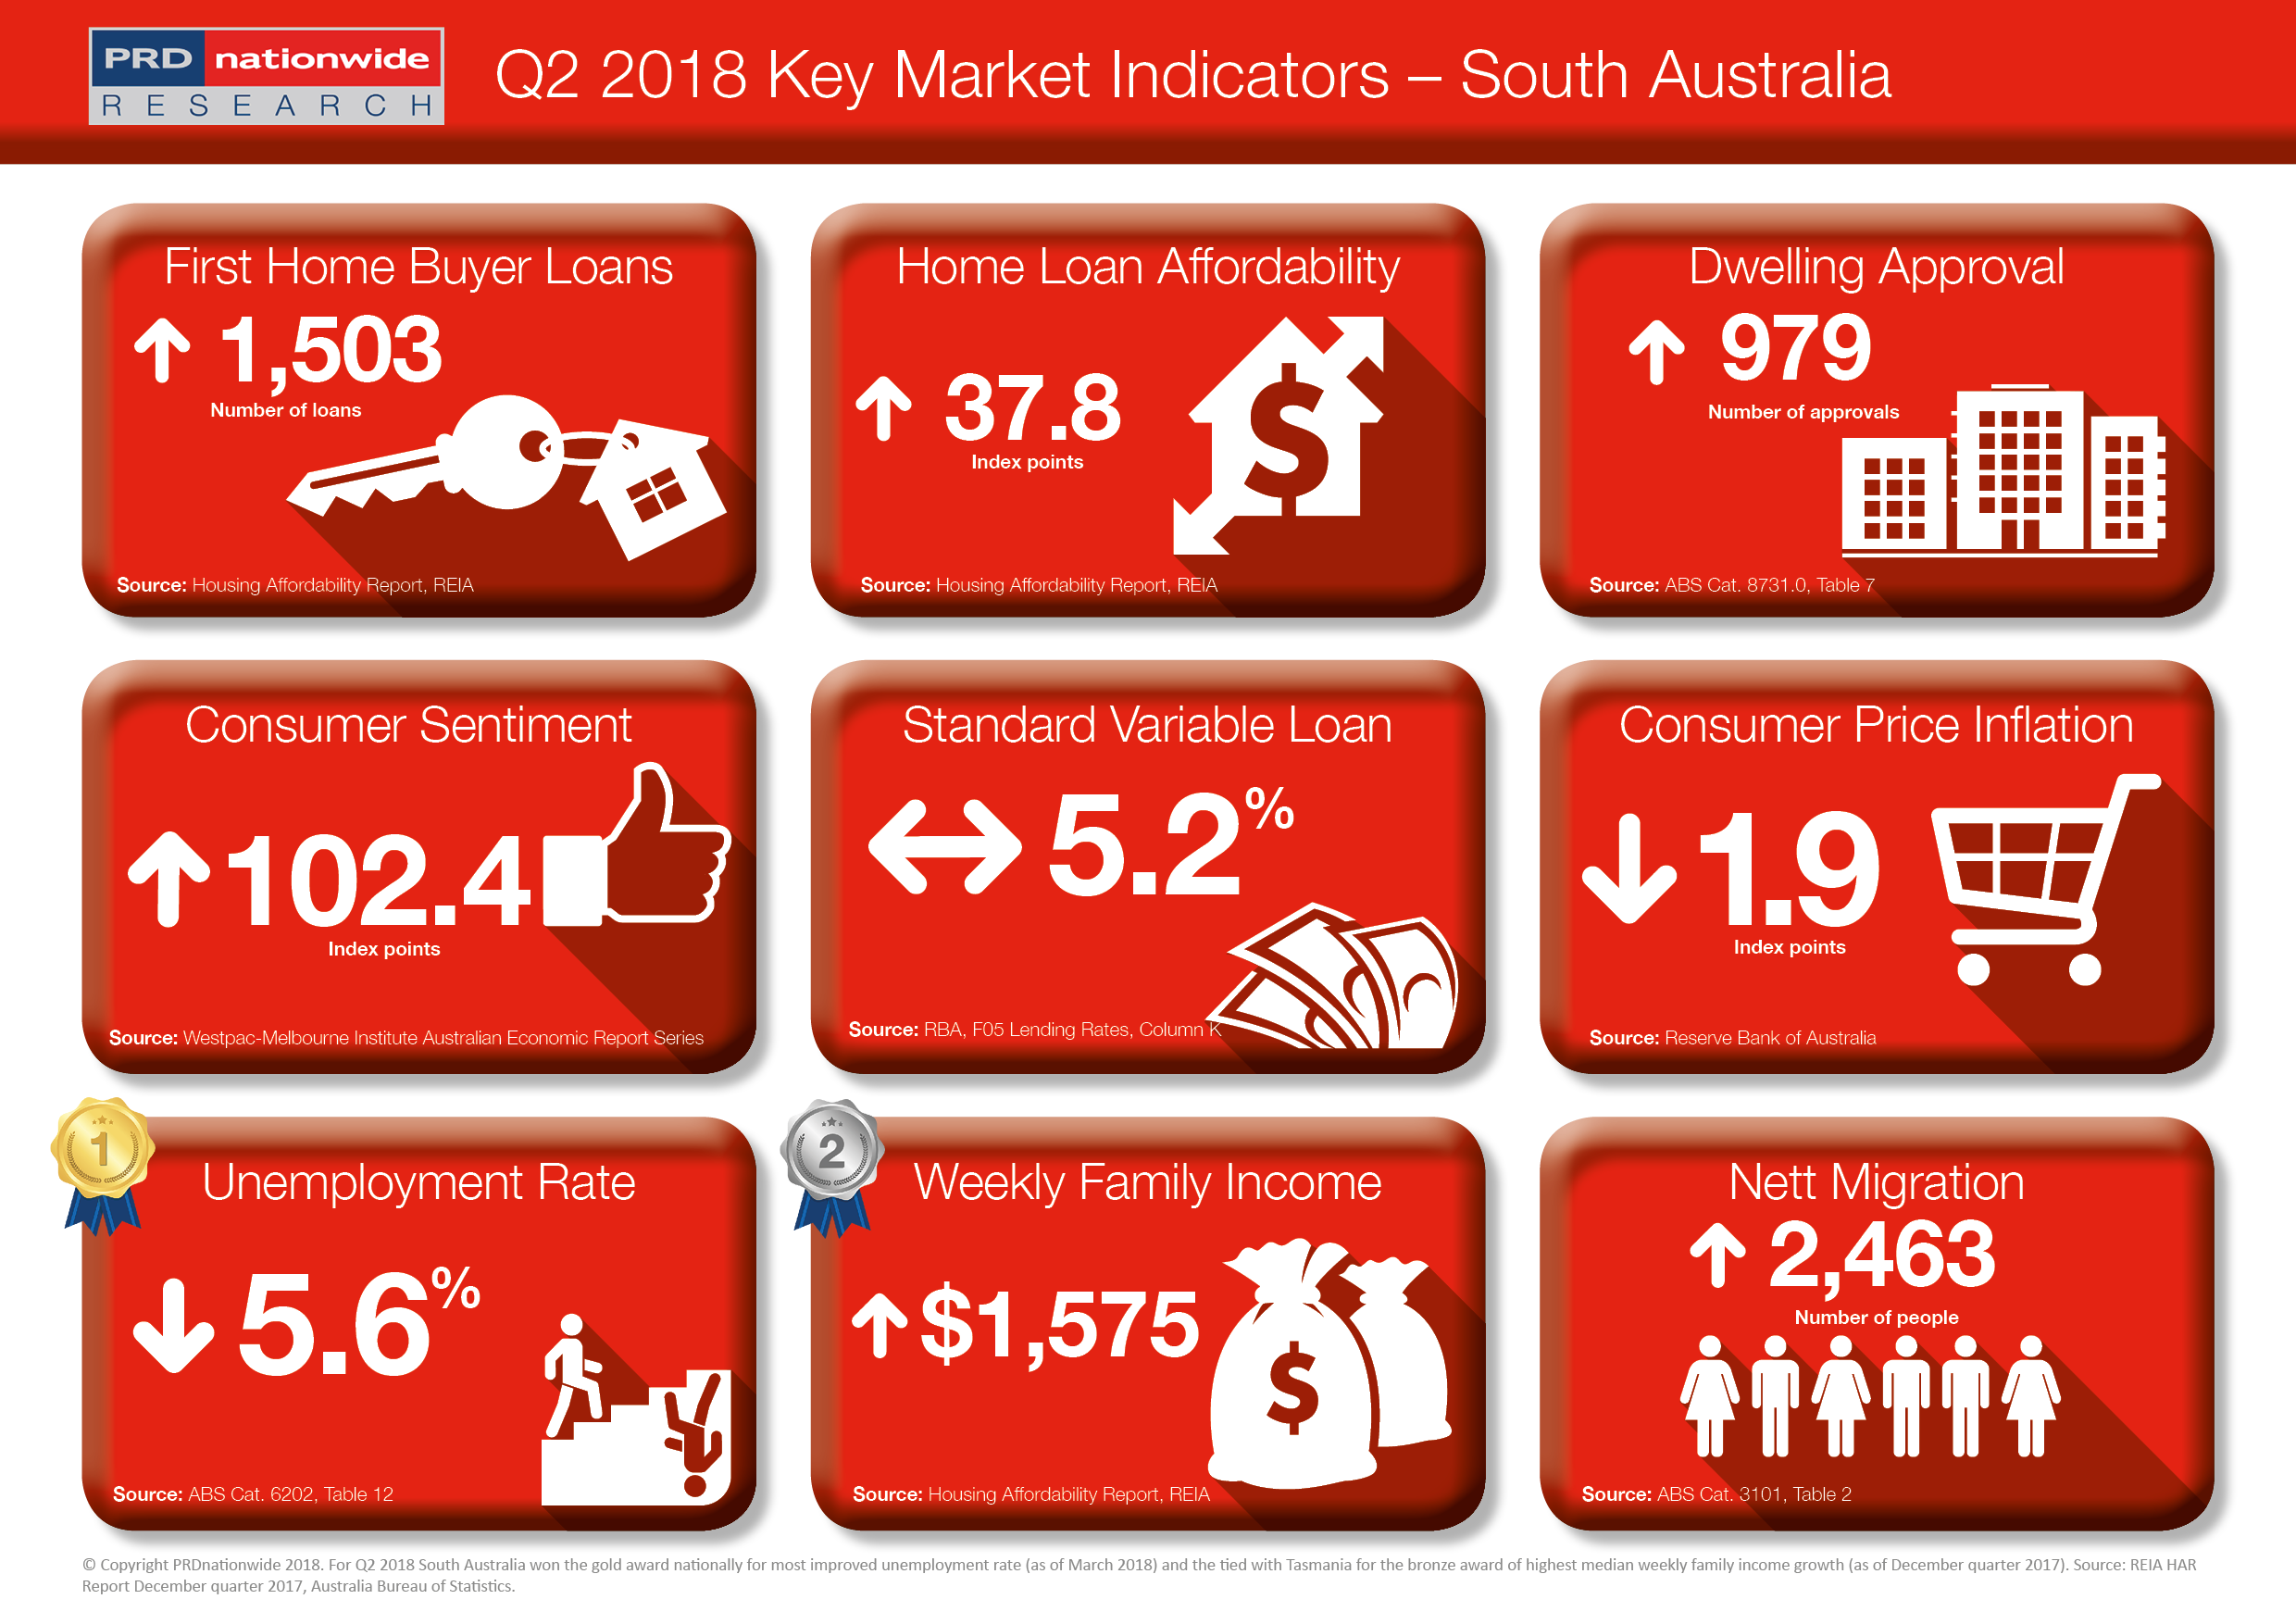 PRDnationwide Q2 Key Market Indicators 2018 - SA.png